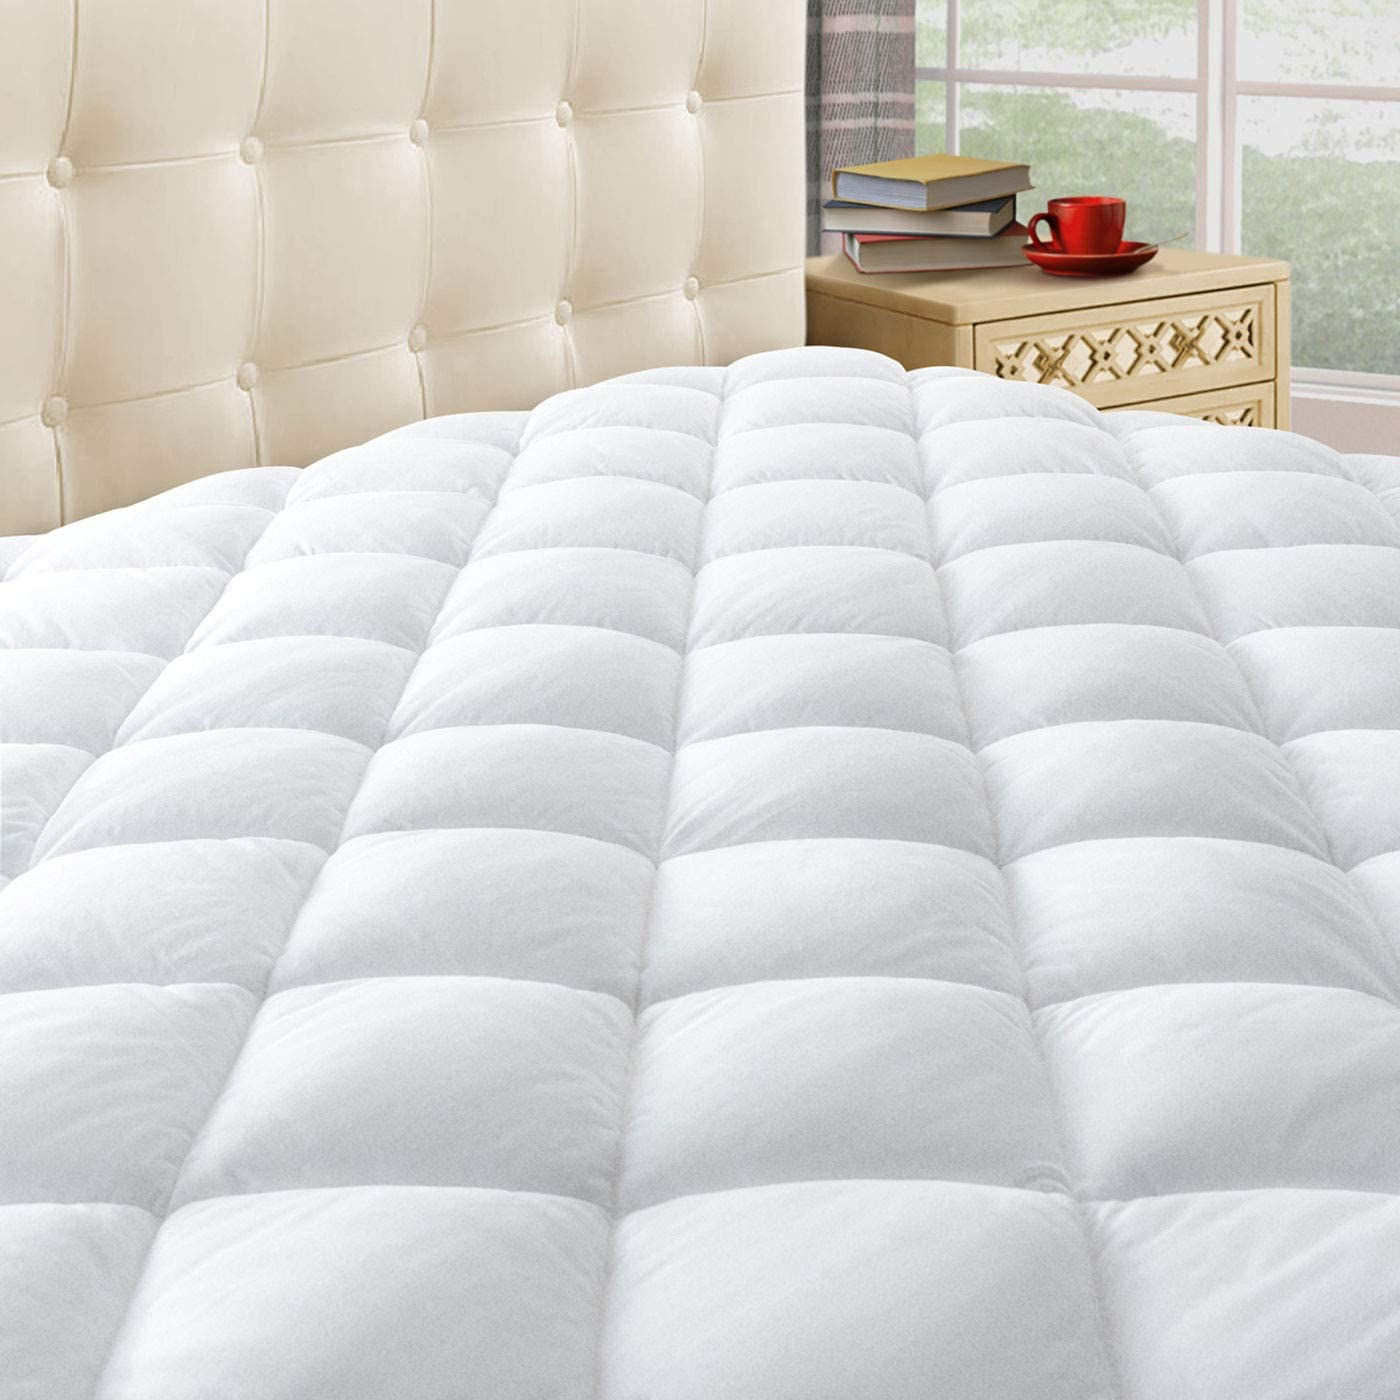 "Taupiri Queen Quilted Mattress Pad Cover with Deep Pocket (8""-21""), Cooling Soft Pillowtop Mattress Cover, Hypoallergenic Down Alternative Mattress Topper"